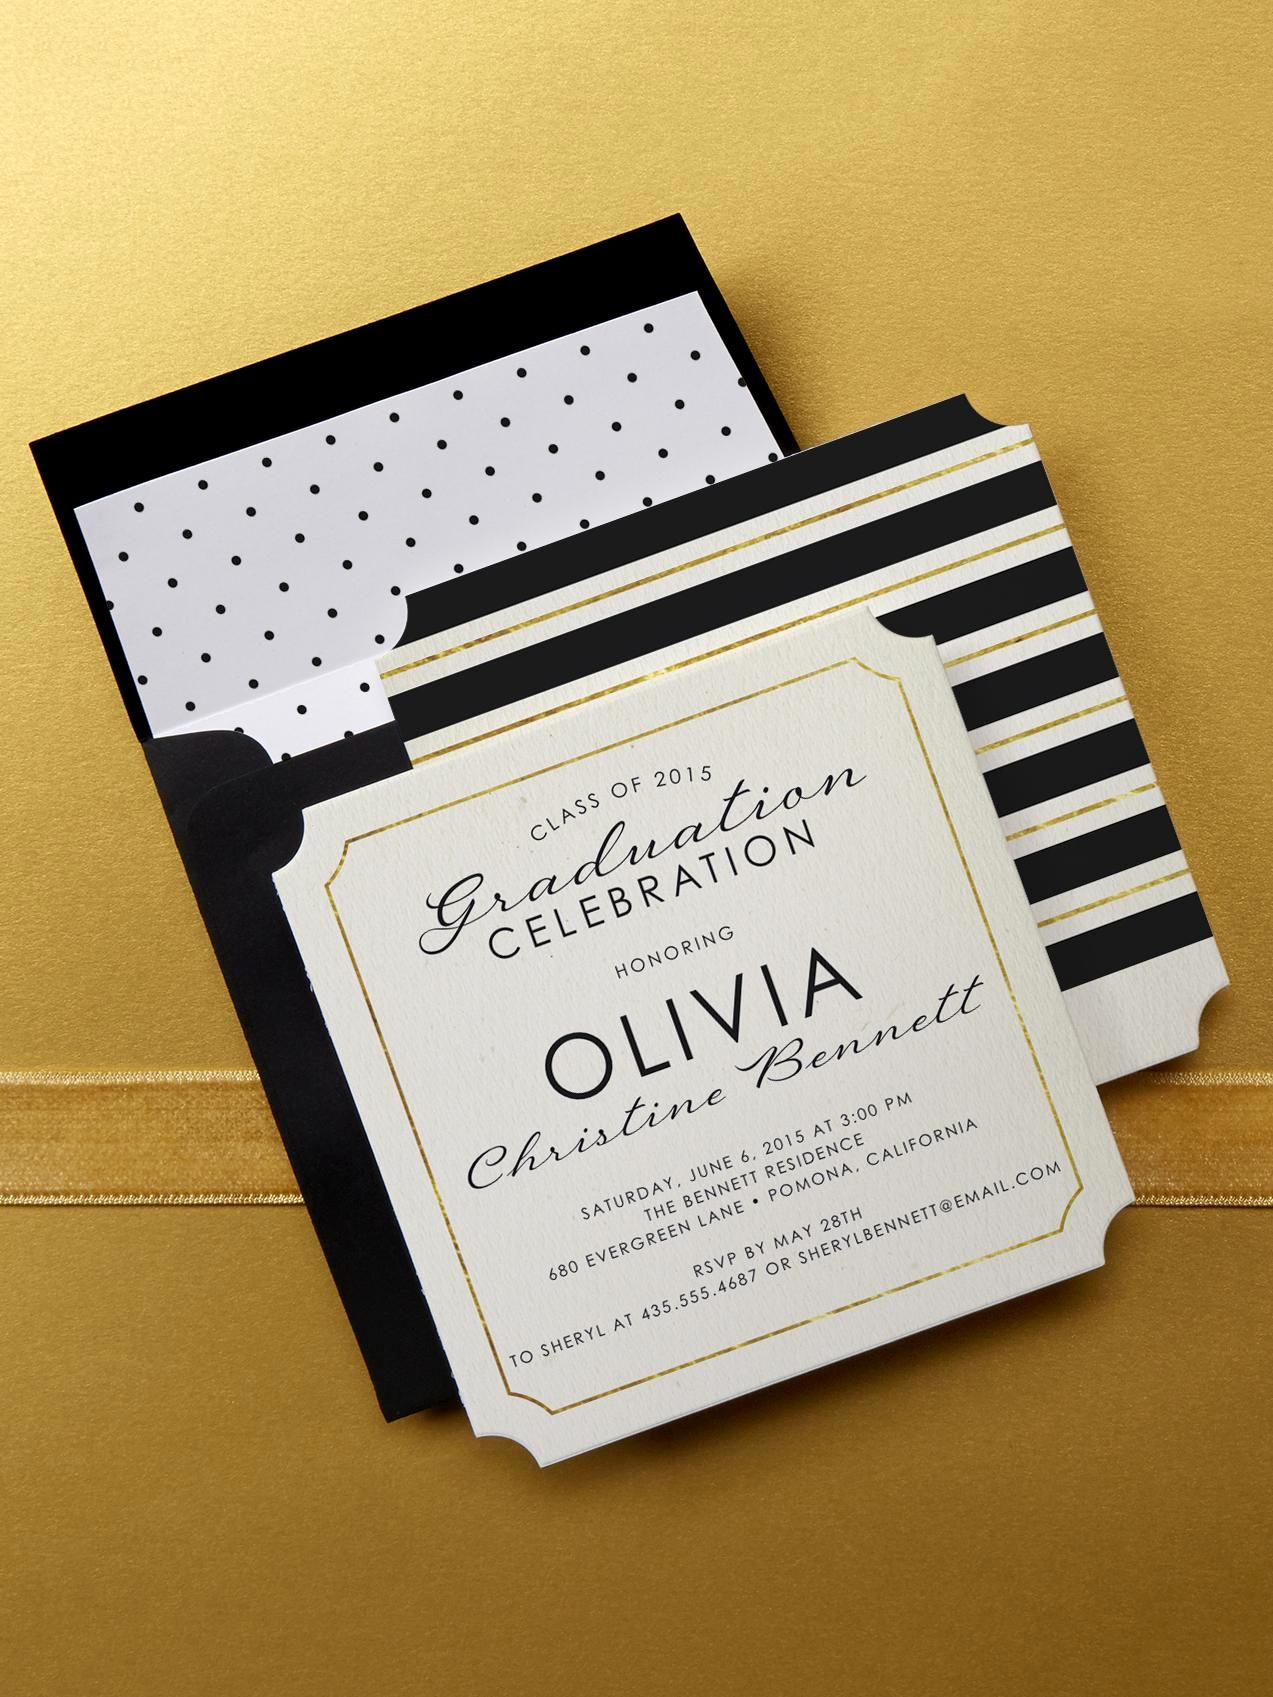 Make A Graduation Invitation Elegant Choose A Linen Graduation Invitation Design at Tiny Prints